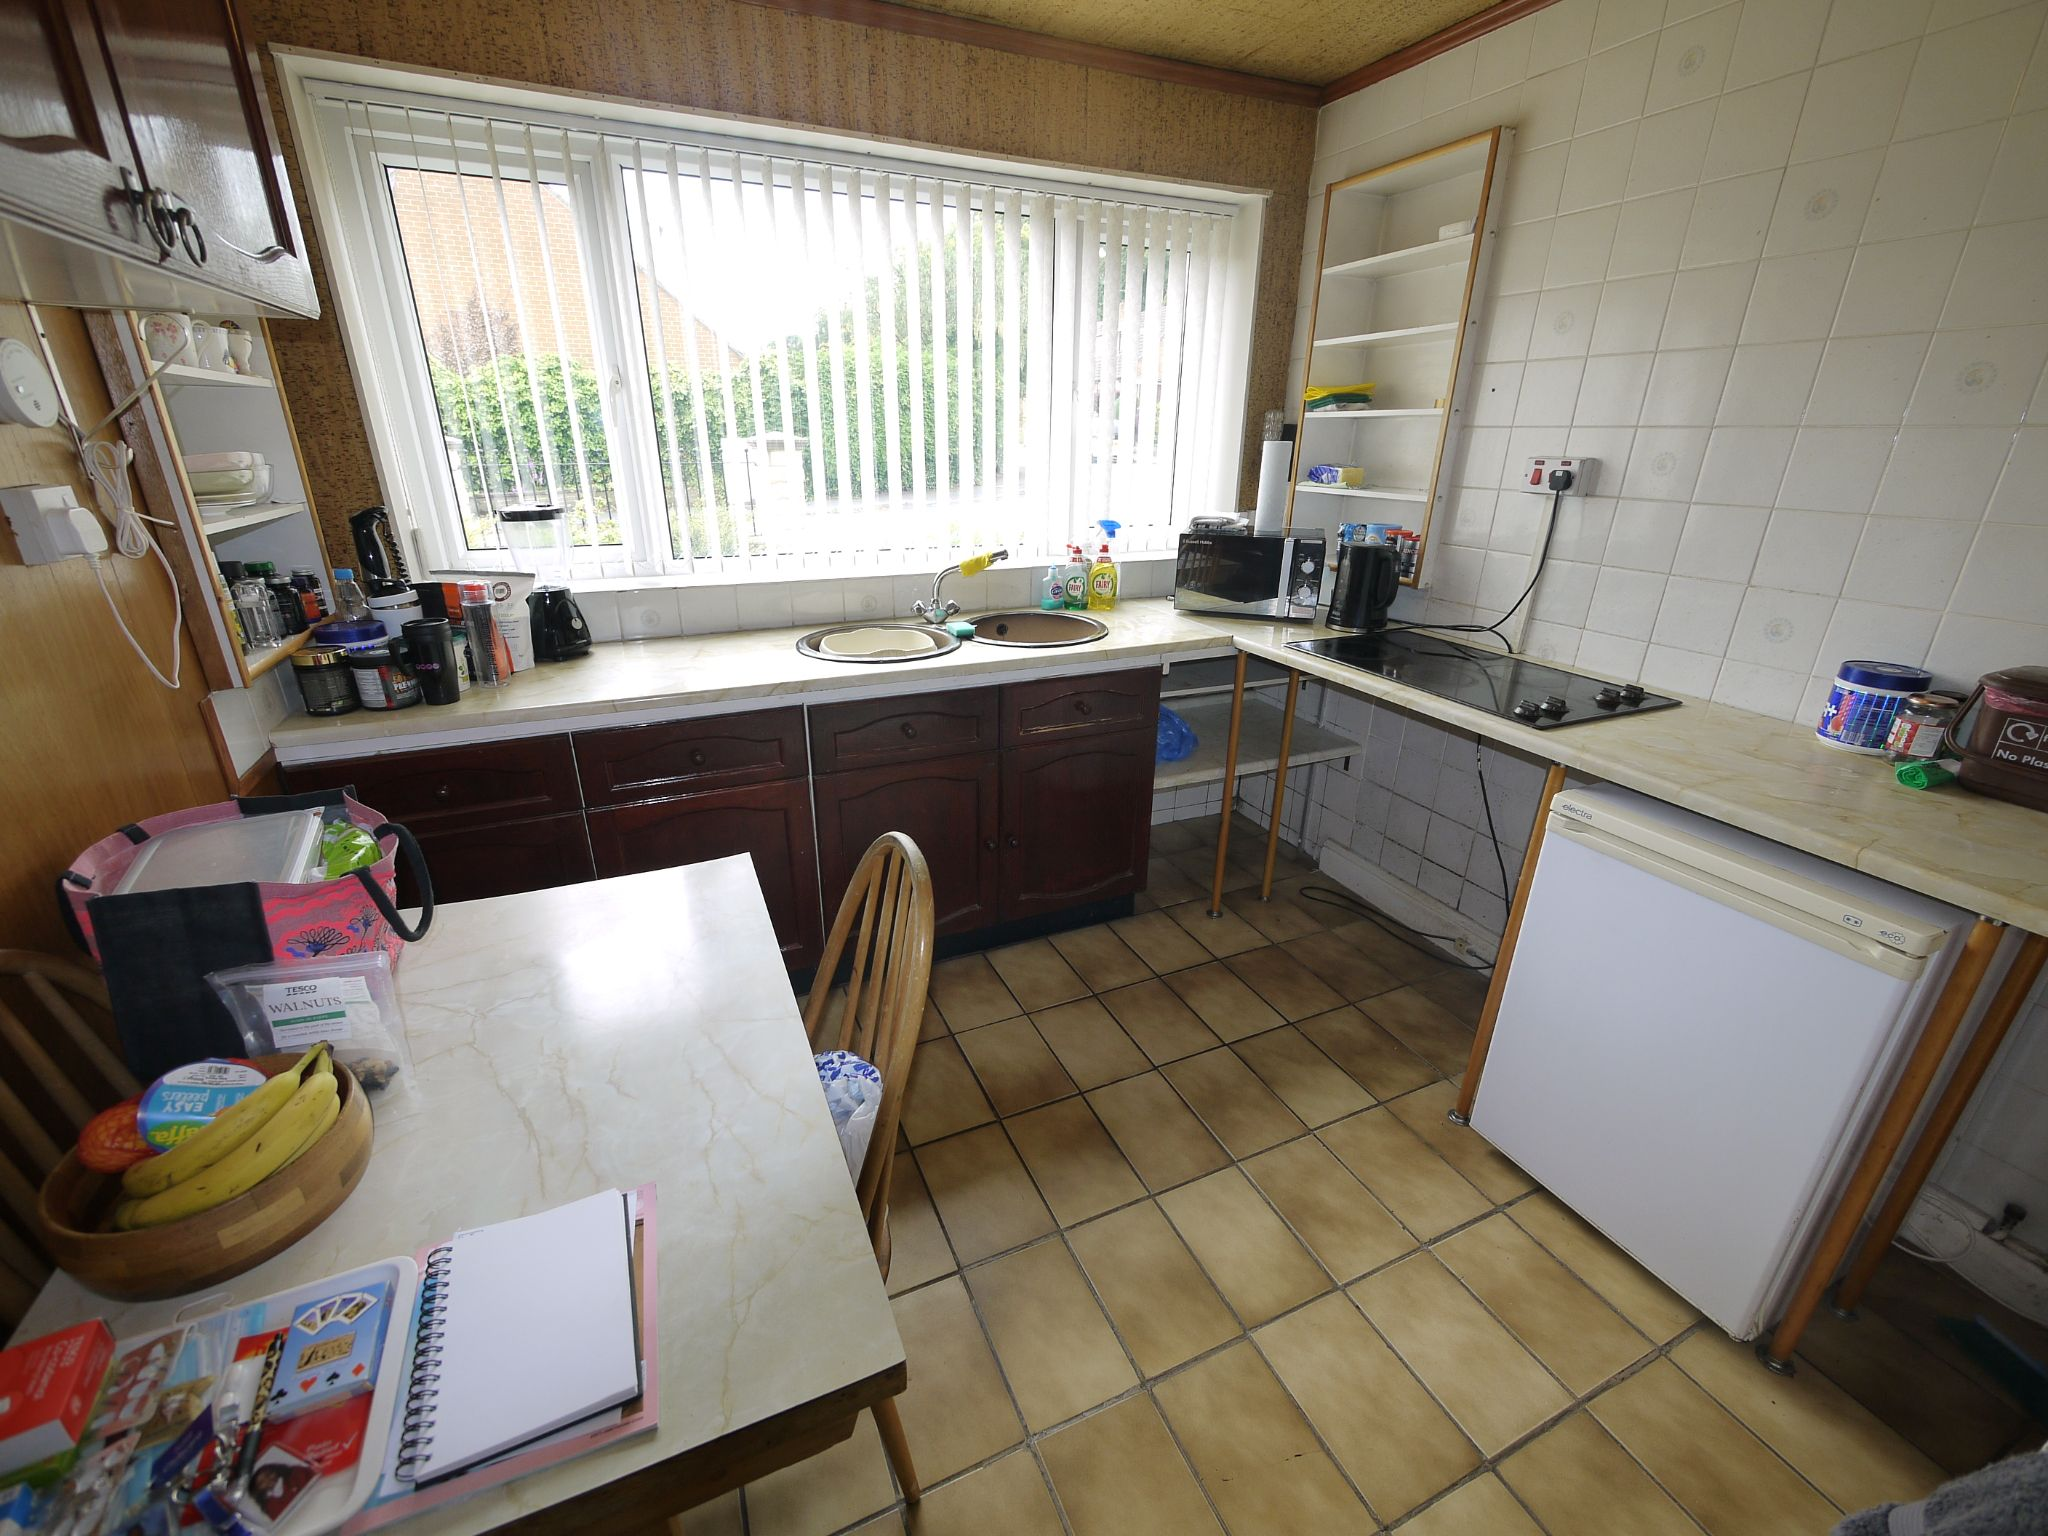 2 bedroom semi-detached bungalow SSTC in Brighouse - Kitchen.